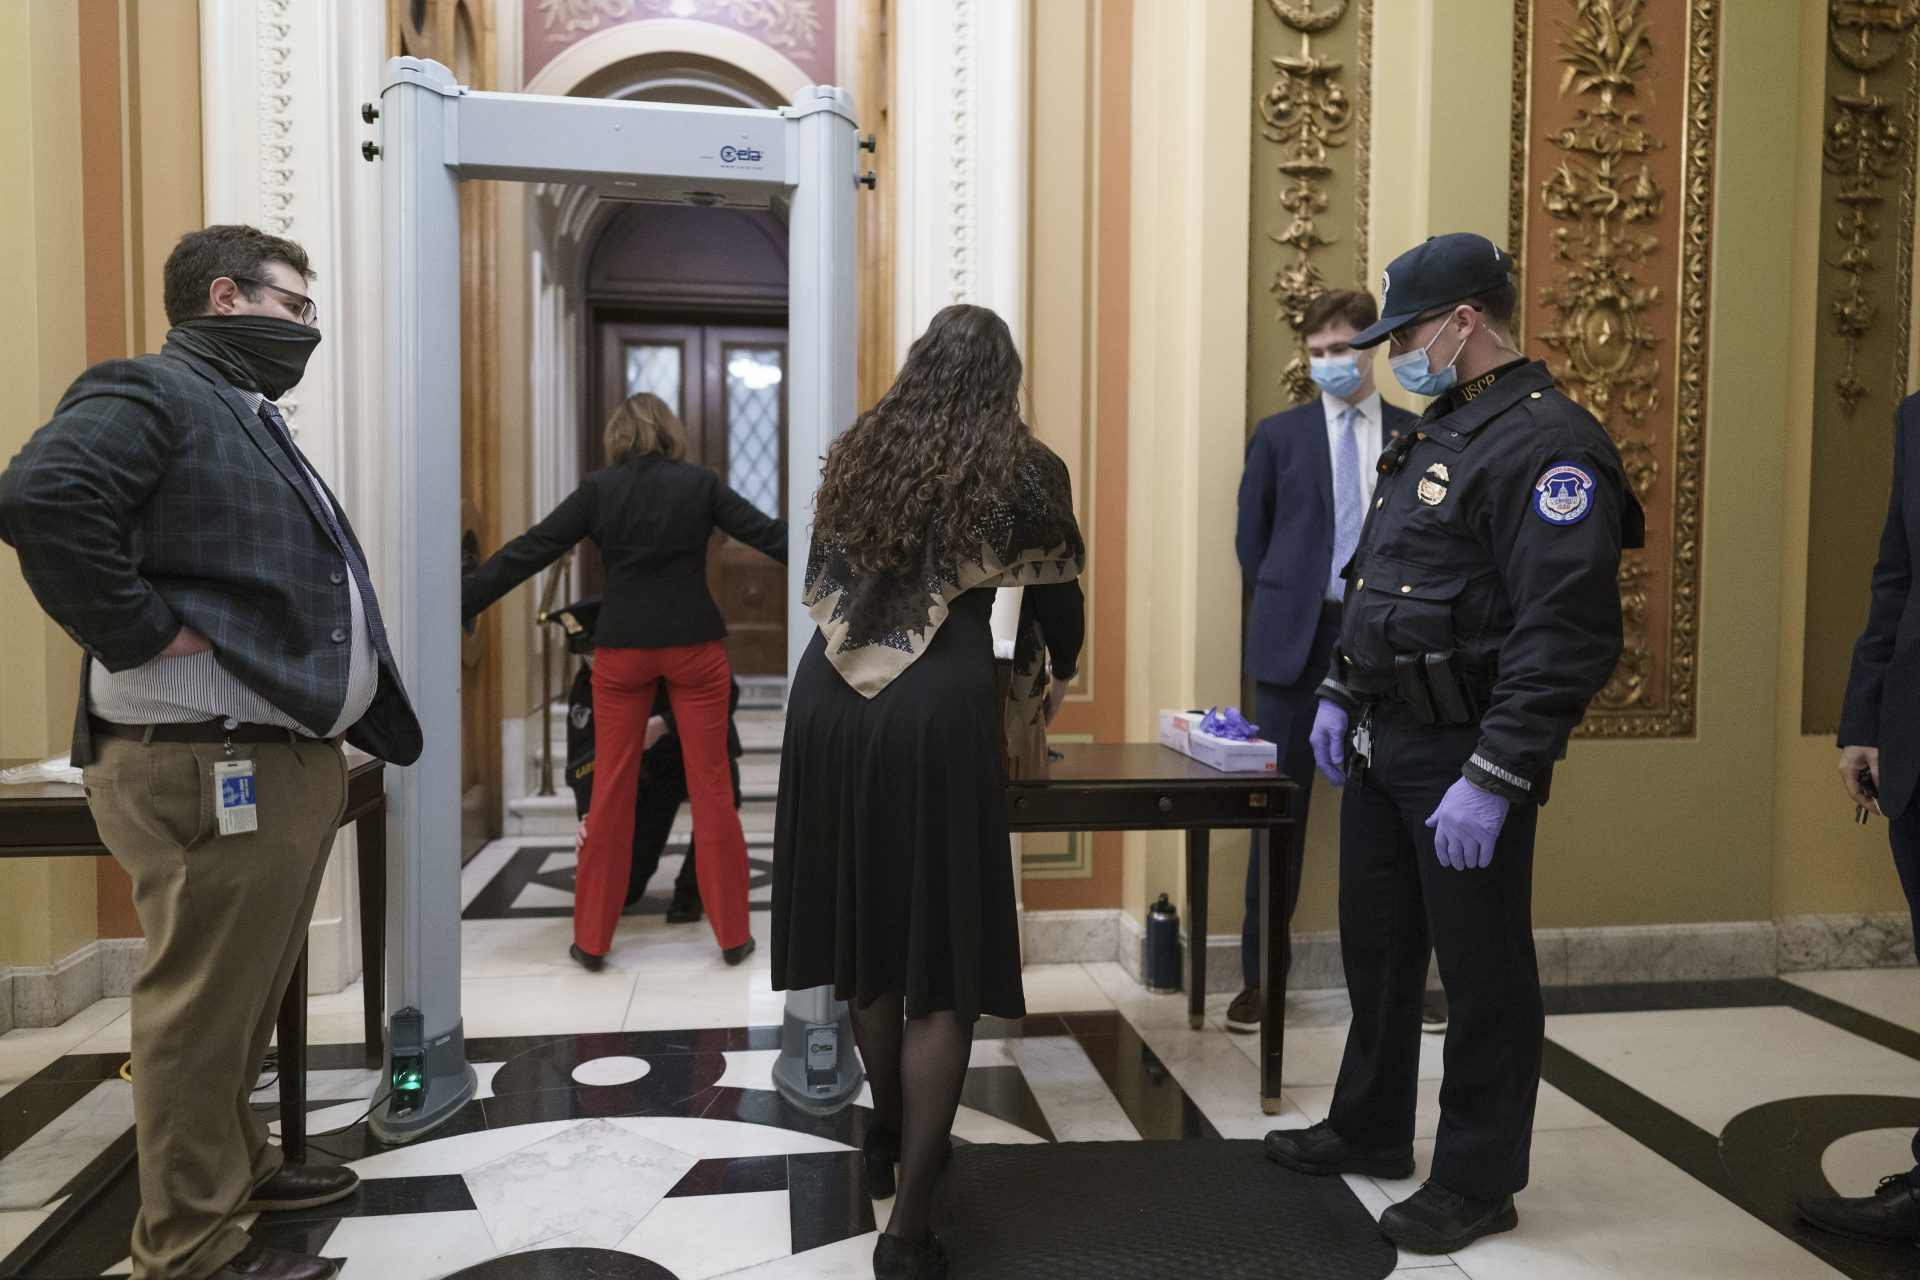 Congressional staff passes through a metal detector and security screening as they enter the House chamber, new measures put into place after a mob loyal to President Donald Trump stormed the Capitol, in Washington, Tuesday, Jan. 12, 2021. Democrats are set to pass a resolution calling on Vice President Mike Pence to invoke constitutional authority under the 25th Amendment to oust Trump.